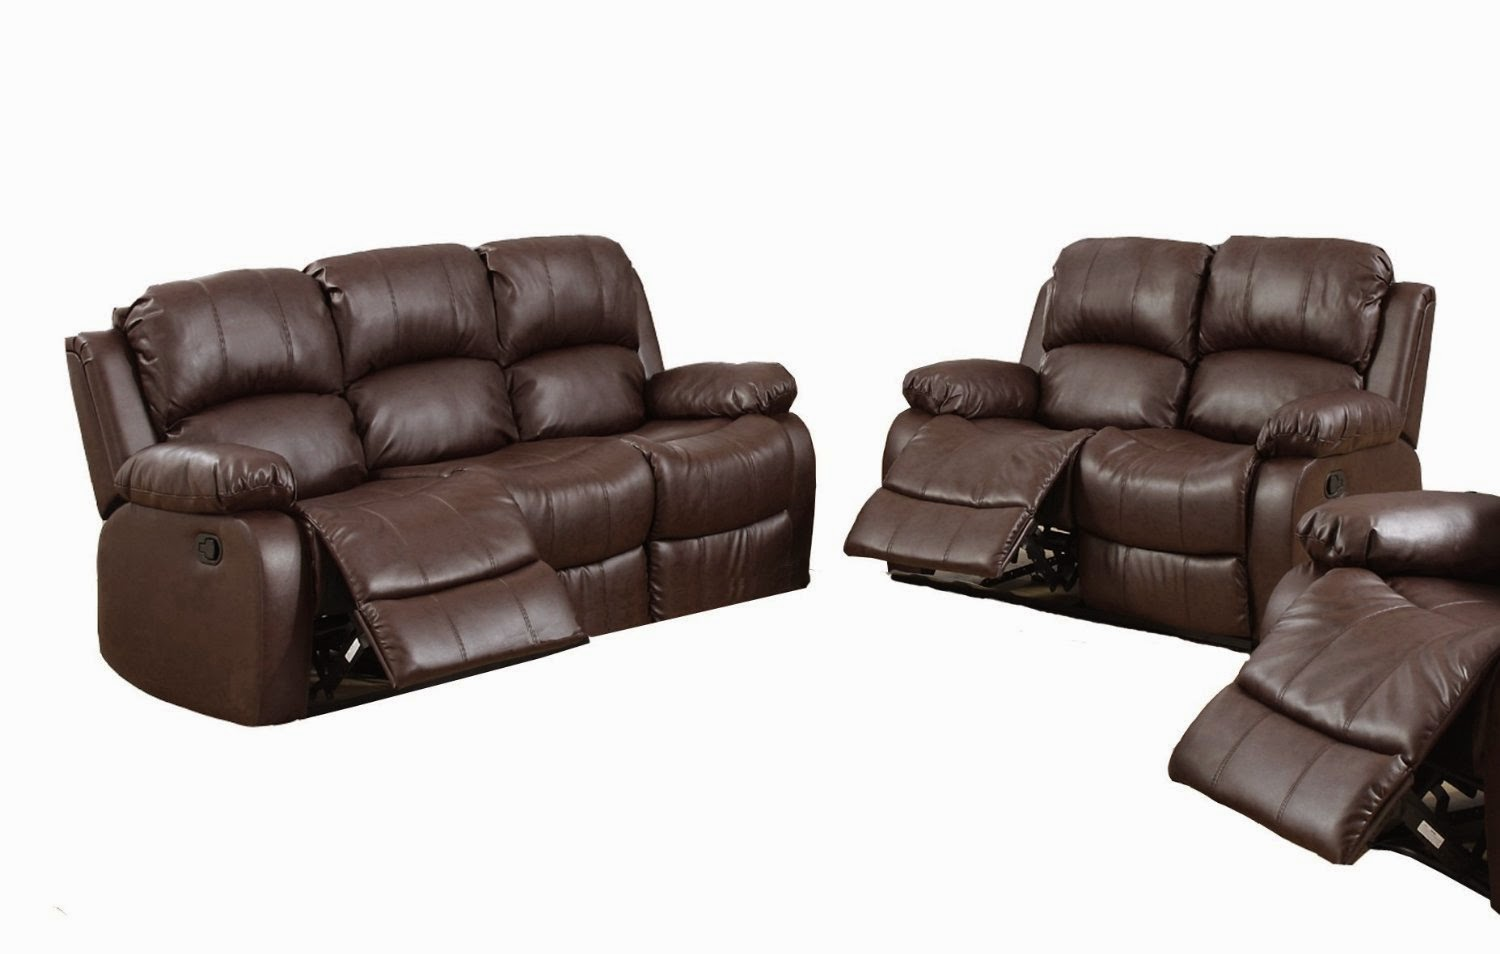 Reclining loveseat sale reclining sofa loveseat set Reclining loveseat sale